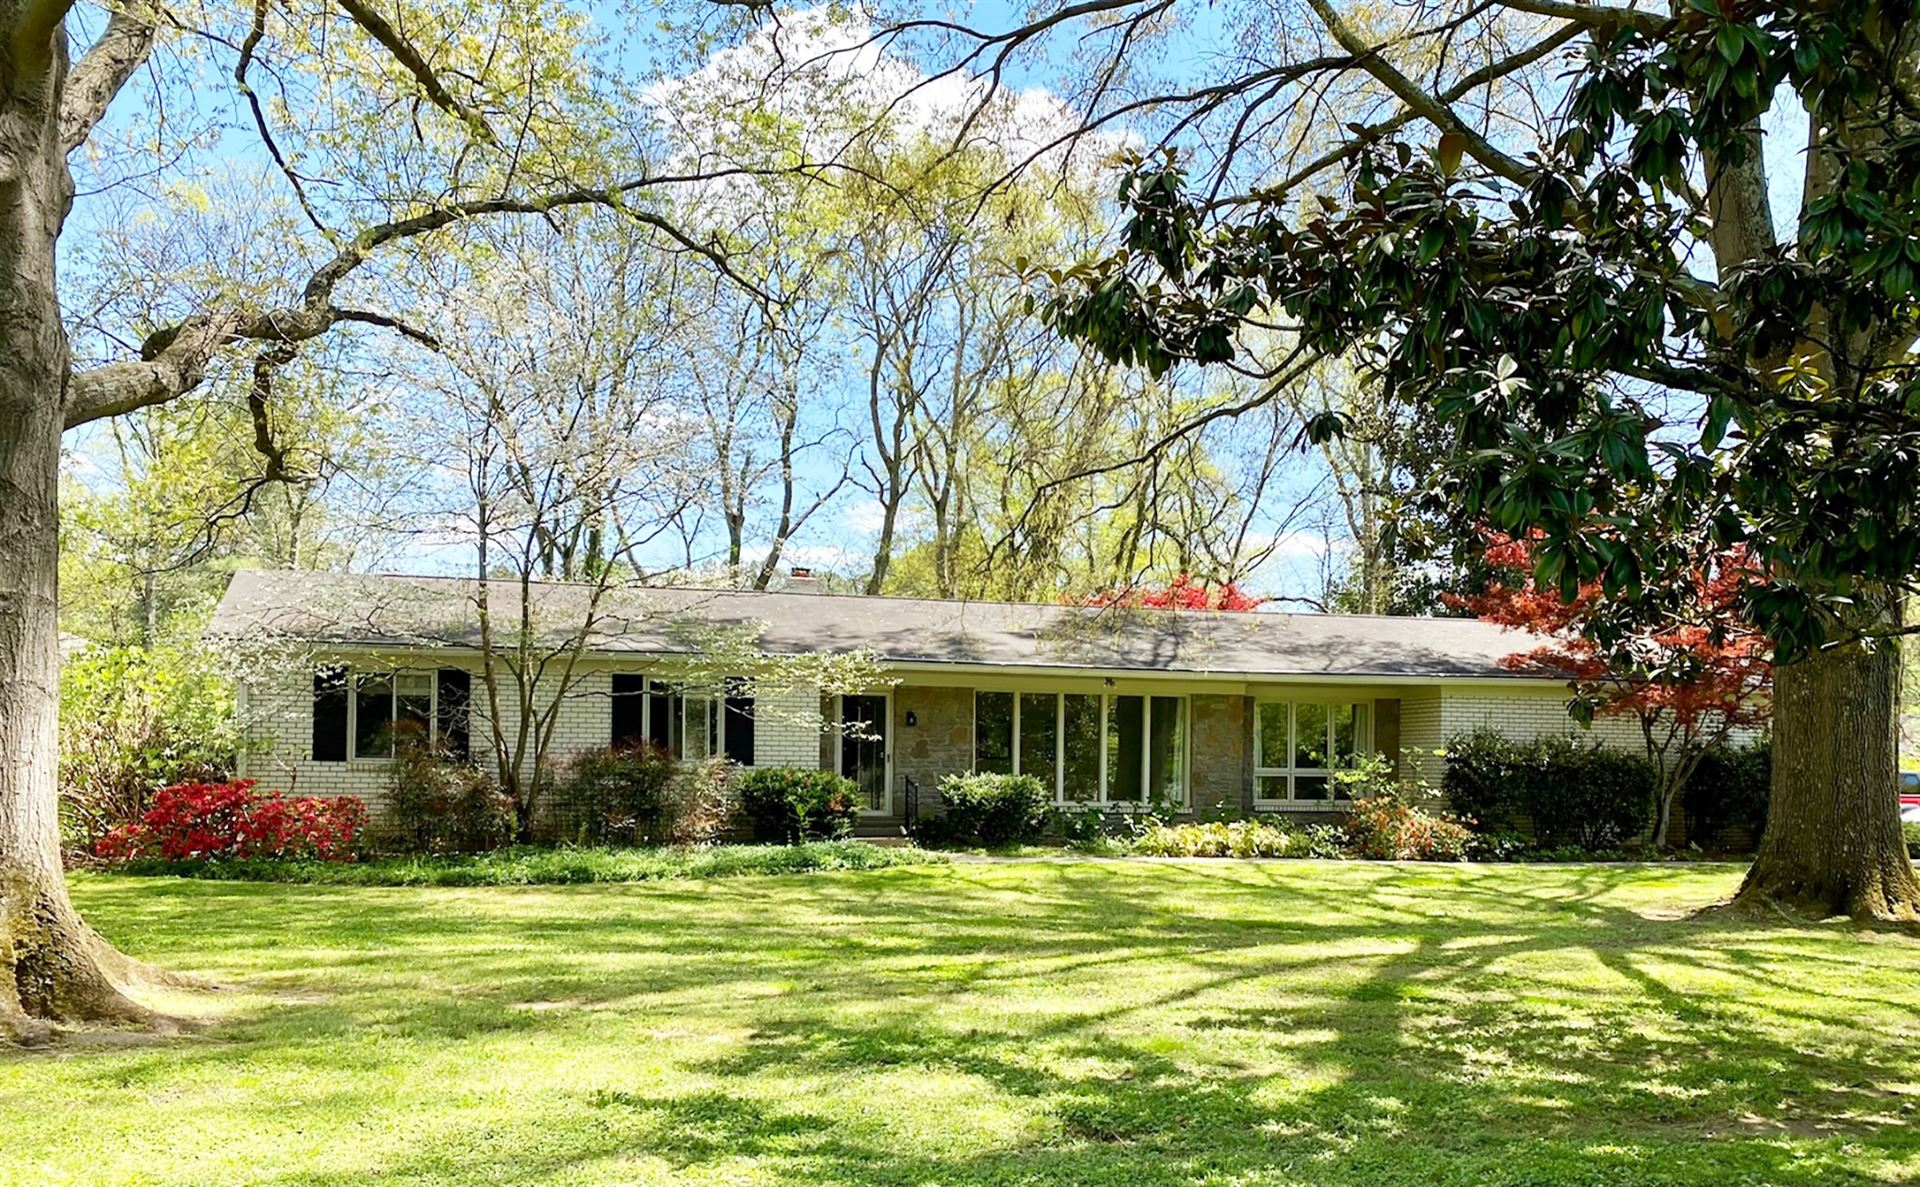 Photo of 1900 Rosewood Valley Dr, Brentwood, TN 37027 (MLS # 2274561)